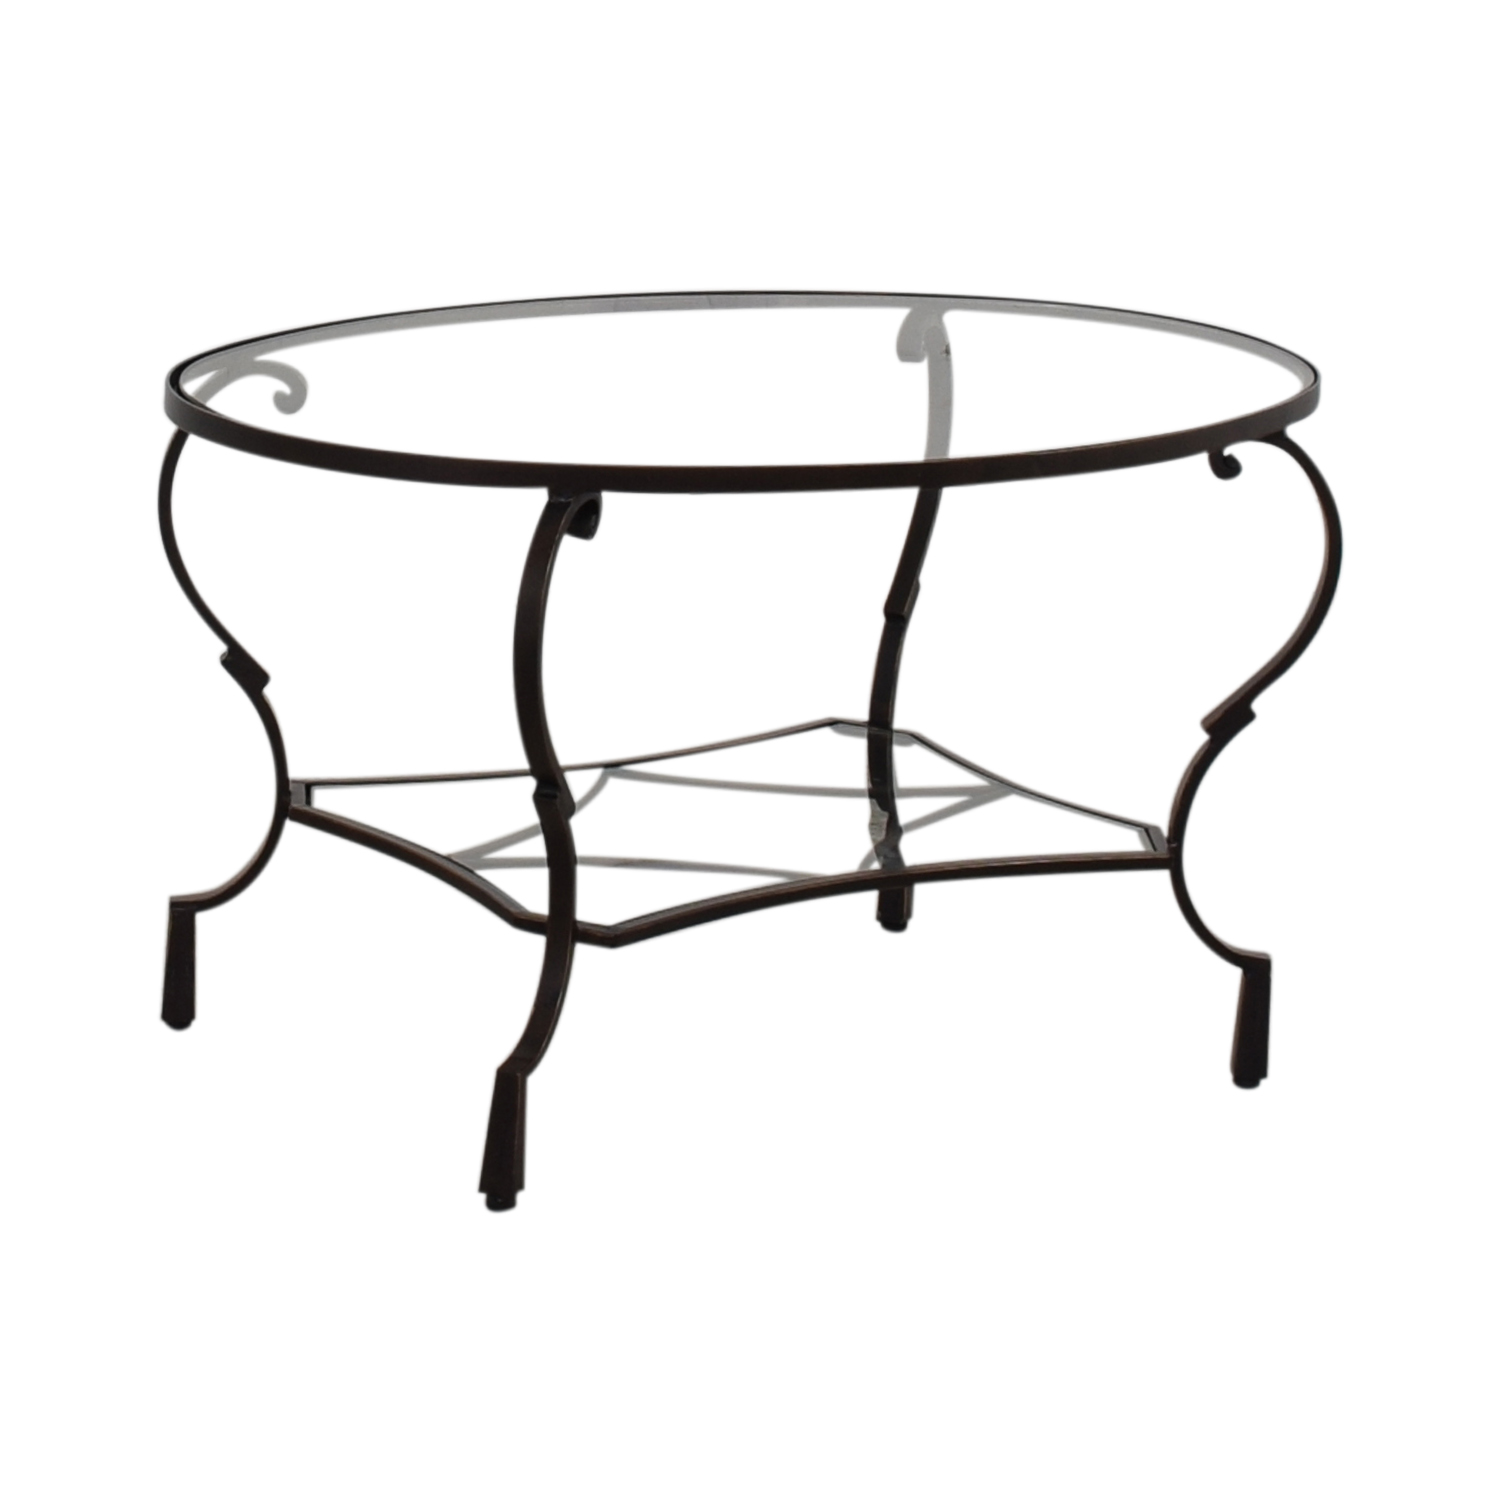 Strange 82 Off Pier 1 Pier 1 Glass Top Brown Oval Coffee Table Tables Pdpeps Interior Chair Design Pdpepsorg